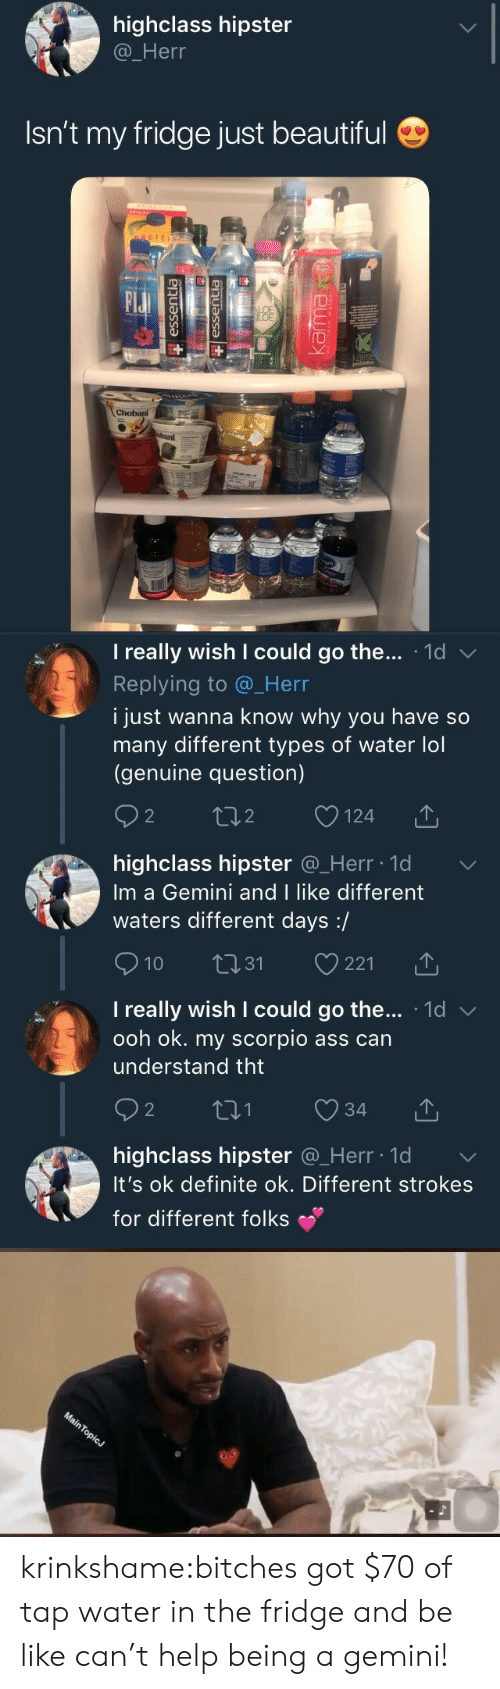 Different Types: highclass hipster  @_Herr  Isn't my fridge just beautiful  OTEI  Elu  BAI   I really wish I could go the . 1d  Replying to @_Herr  i just wanna know why you have so  many different types of water lol  (genuine question)  2  o124  2  highclass hipster @_Herr ld  Im a Gemini and I like different  waters different days:/  10 31 221  I really wish I could go the... 1d v  ooh ok. my scorpio ass can  understand tht  2  highclass hipster Q_Herr lo  It's ok definite ok. Different strokes  for different folks krinkshame:bitches got $70 of tap water in the fridge and be like can't help being a gemini!